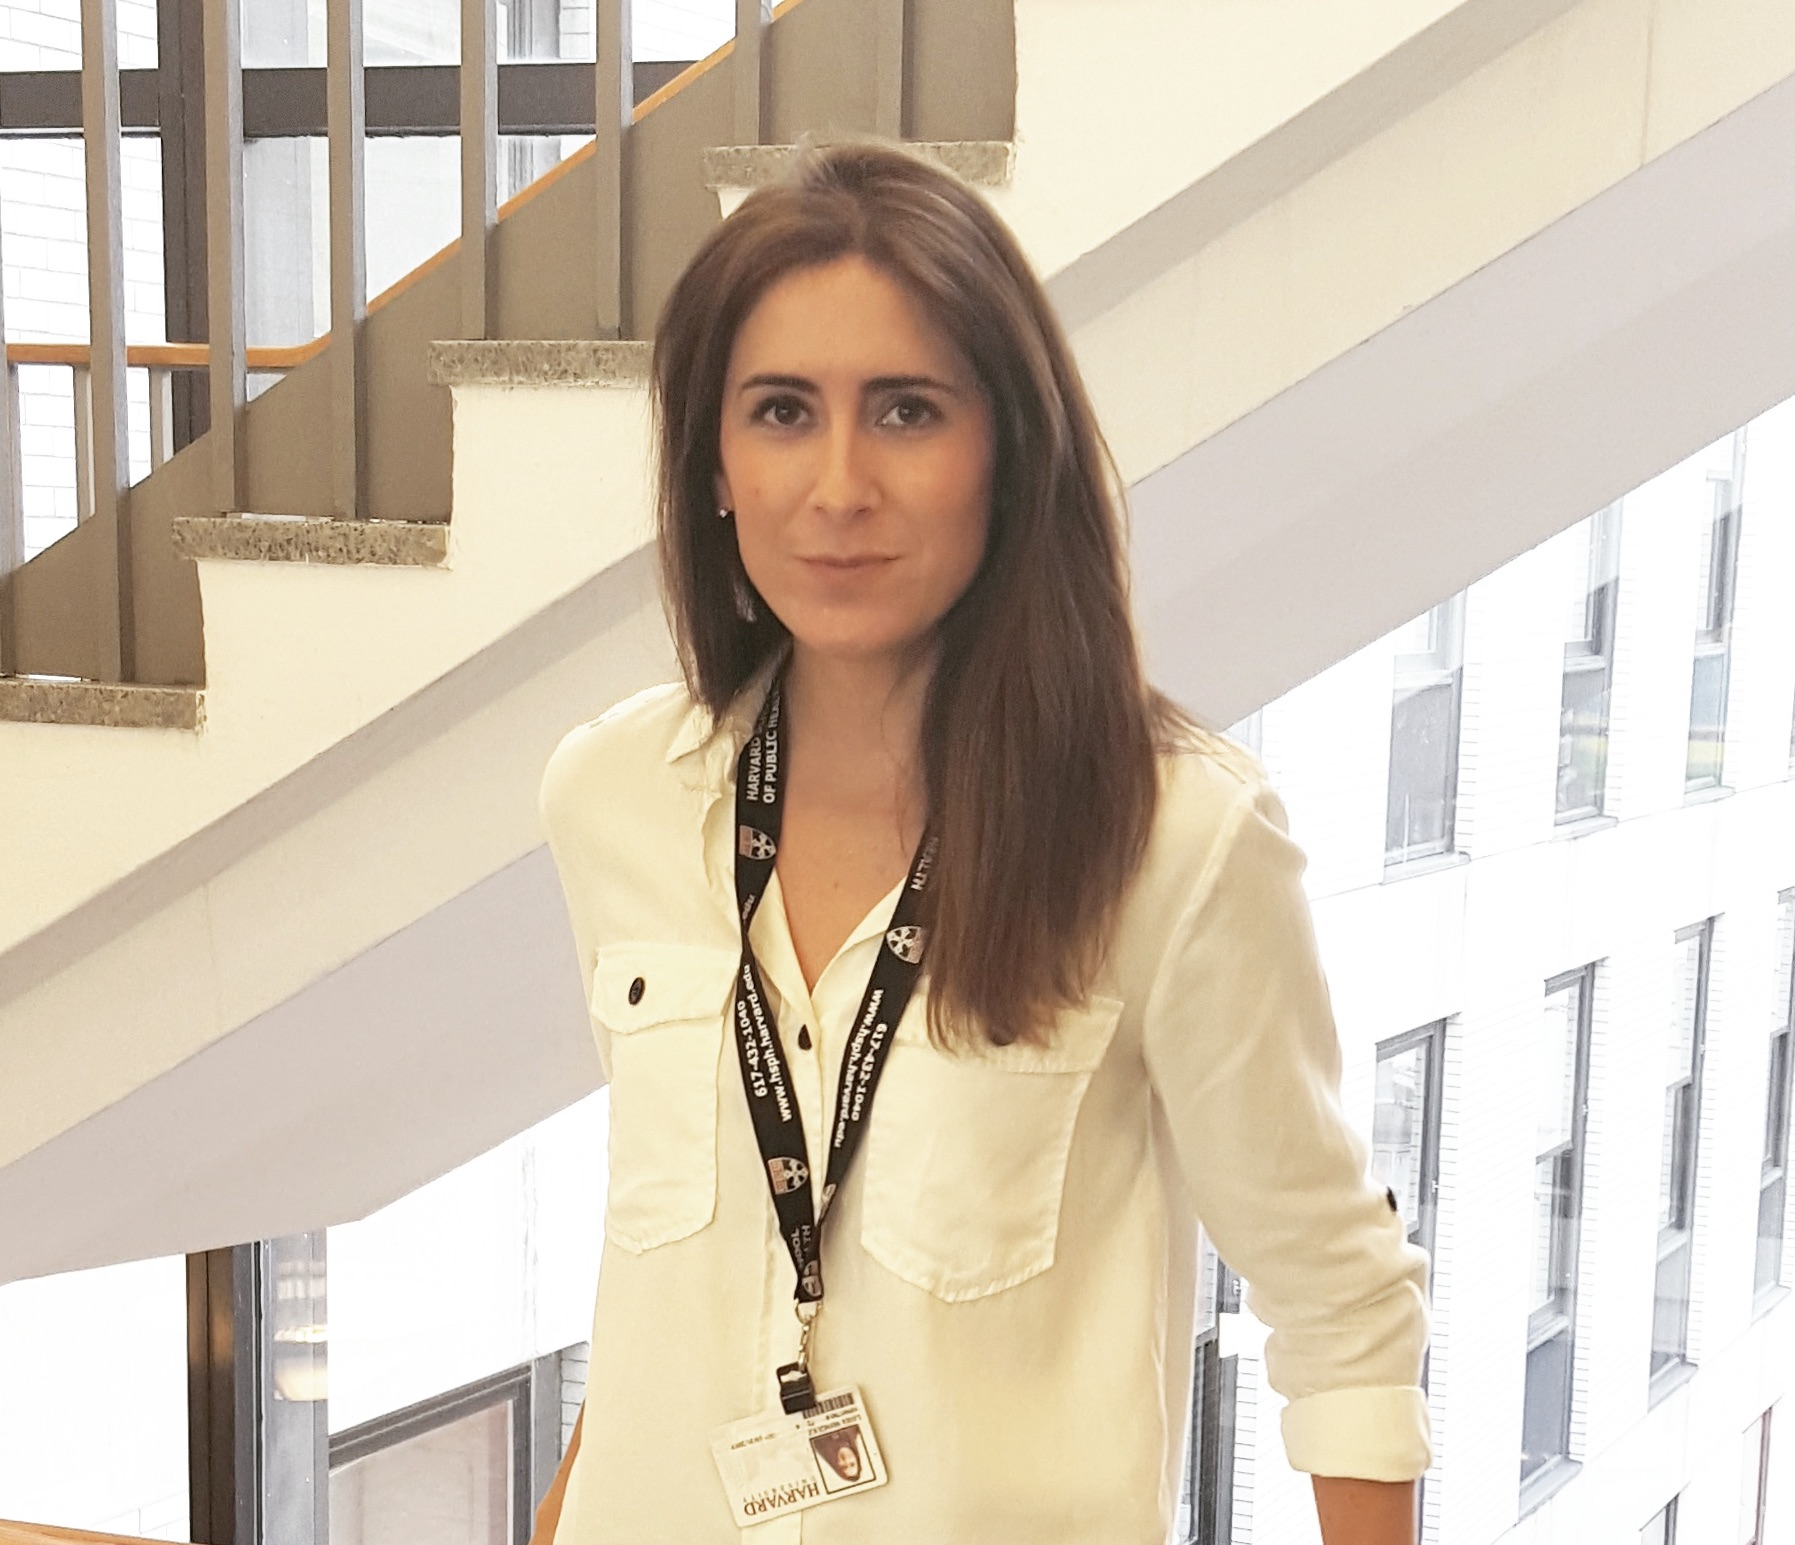 What Really Inspires Lidia Mínguez